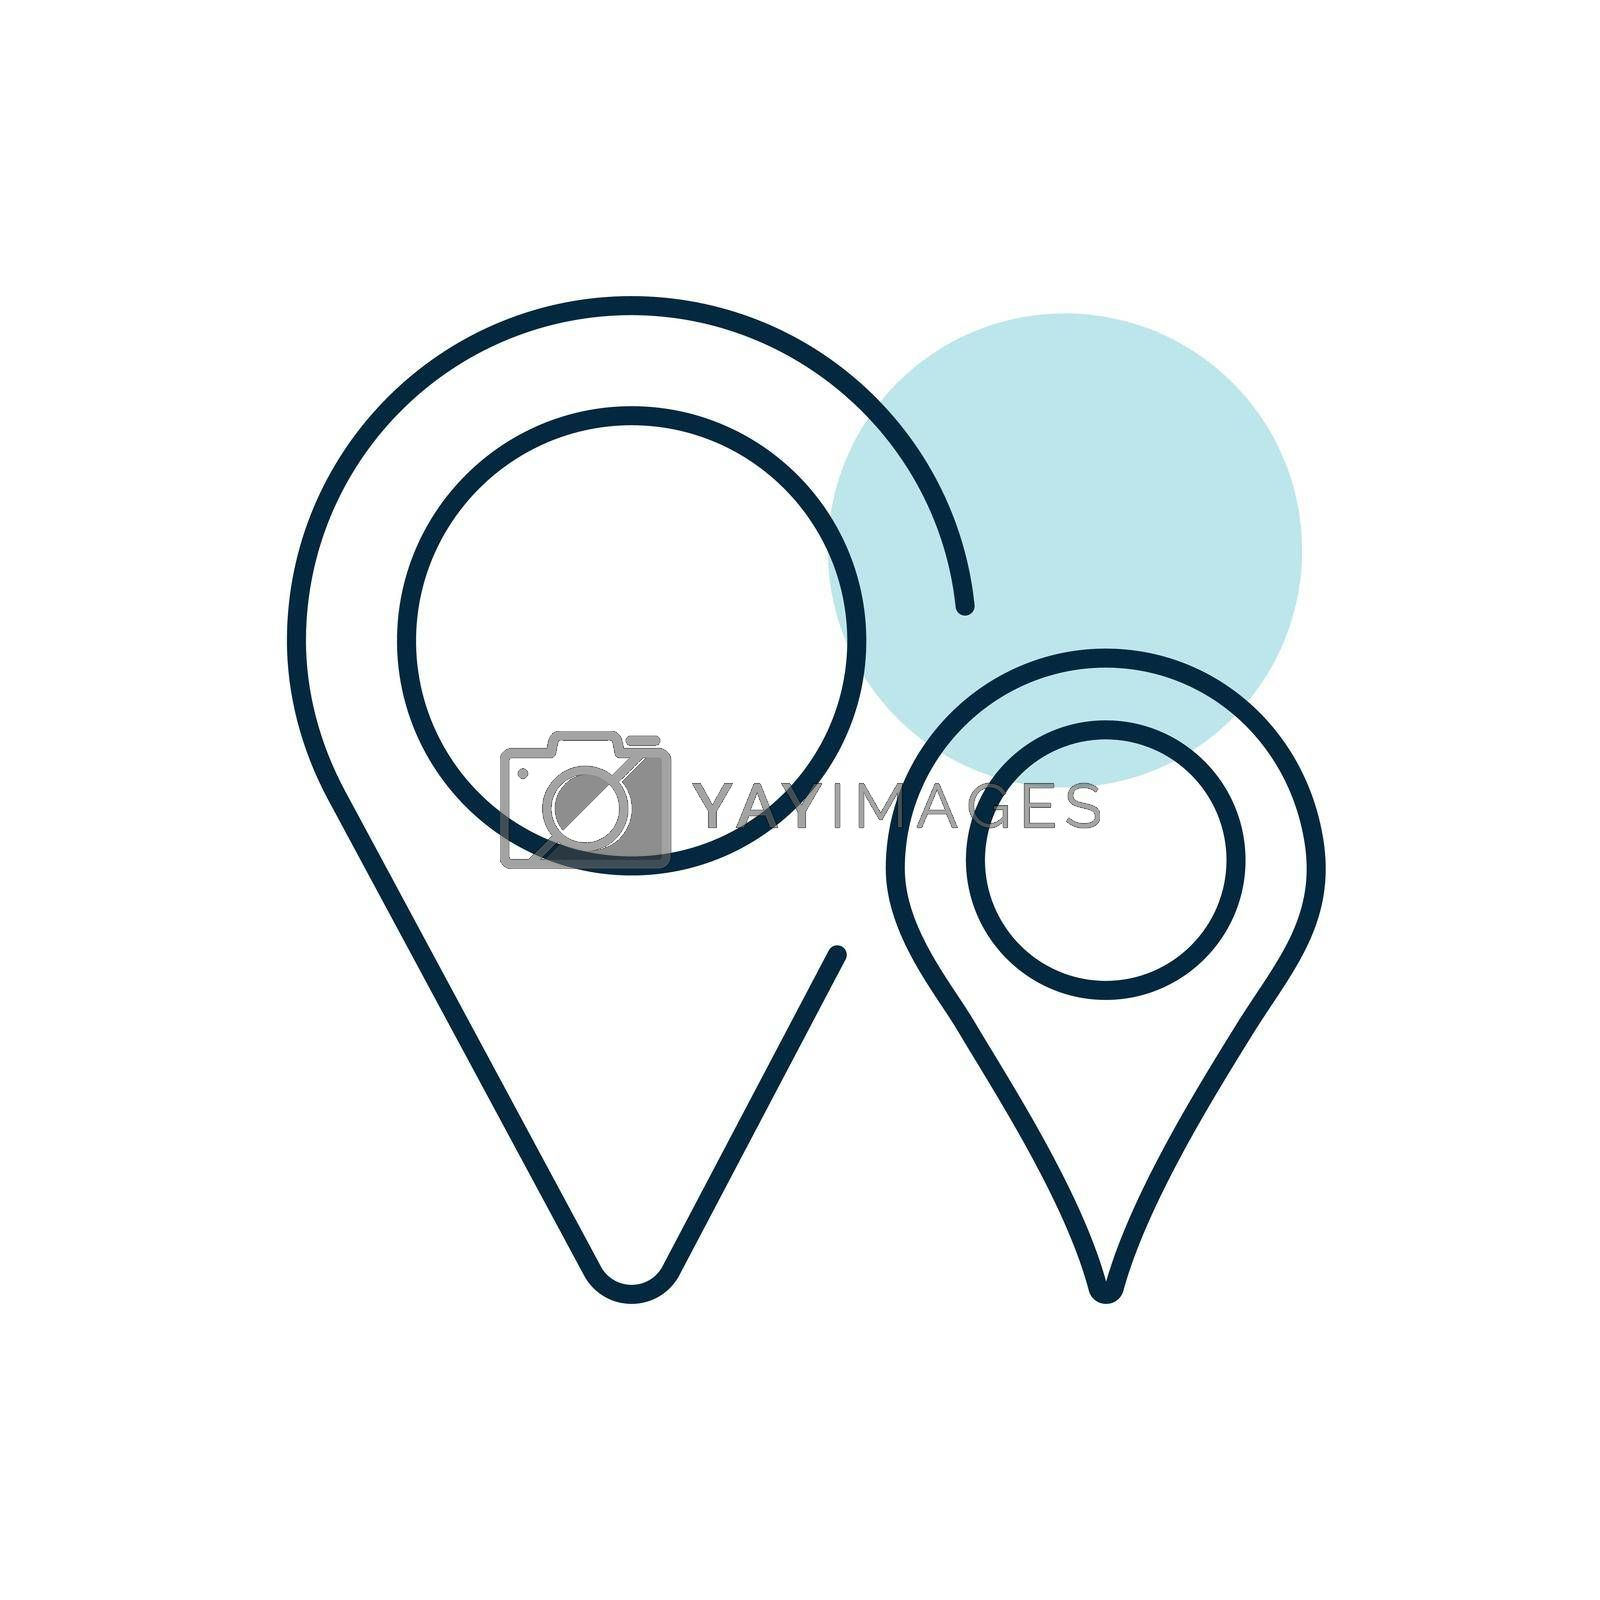 Two pin map icon. Map pointer. Map markers. GPS location symbol. Navigation sign. Graph symbol for travel and tourism web site and apps, logo, app, UI